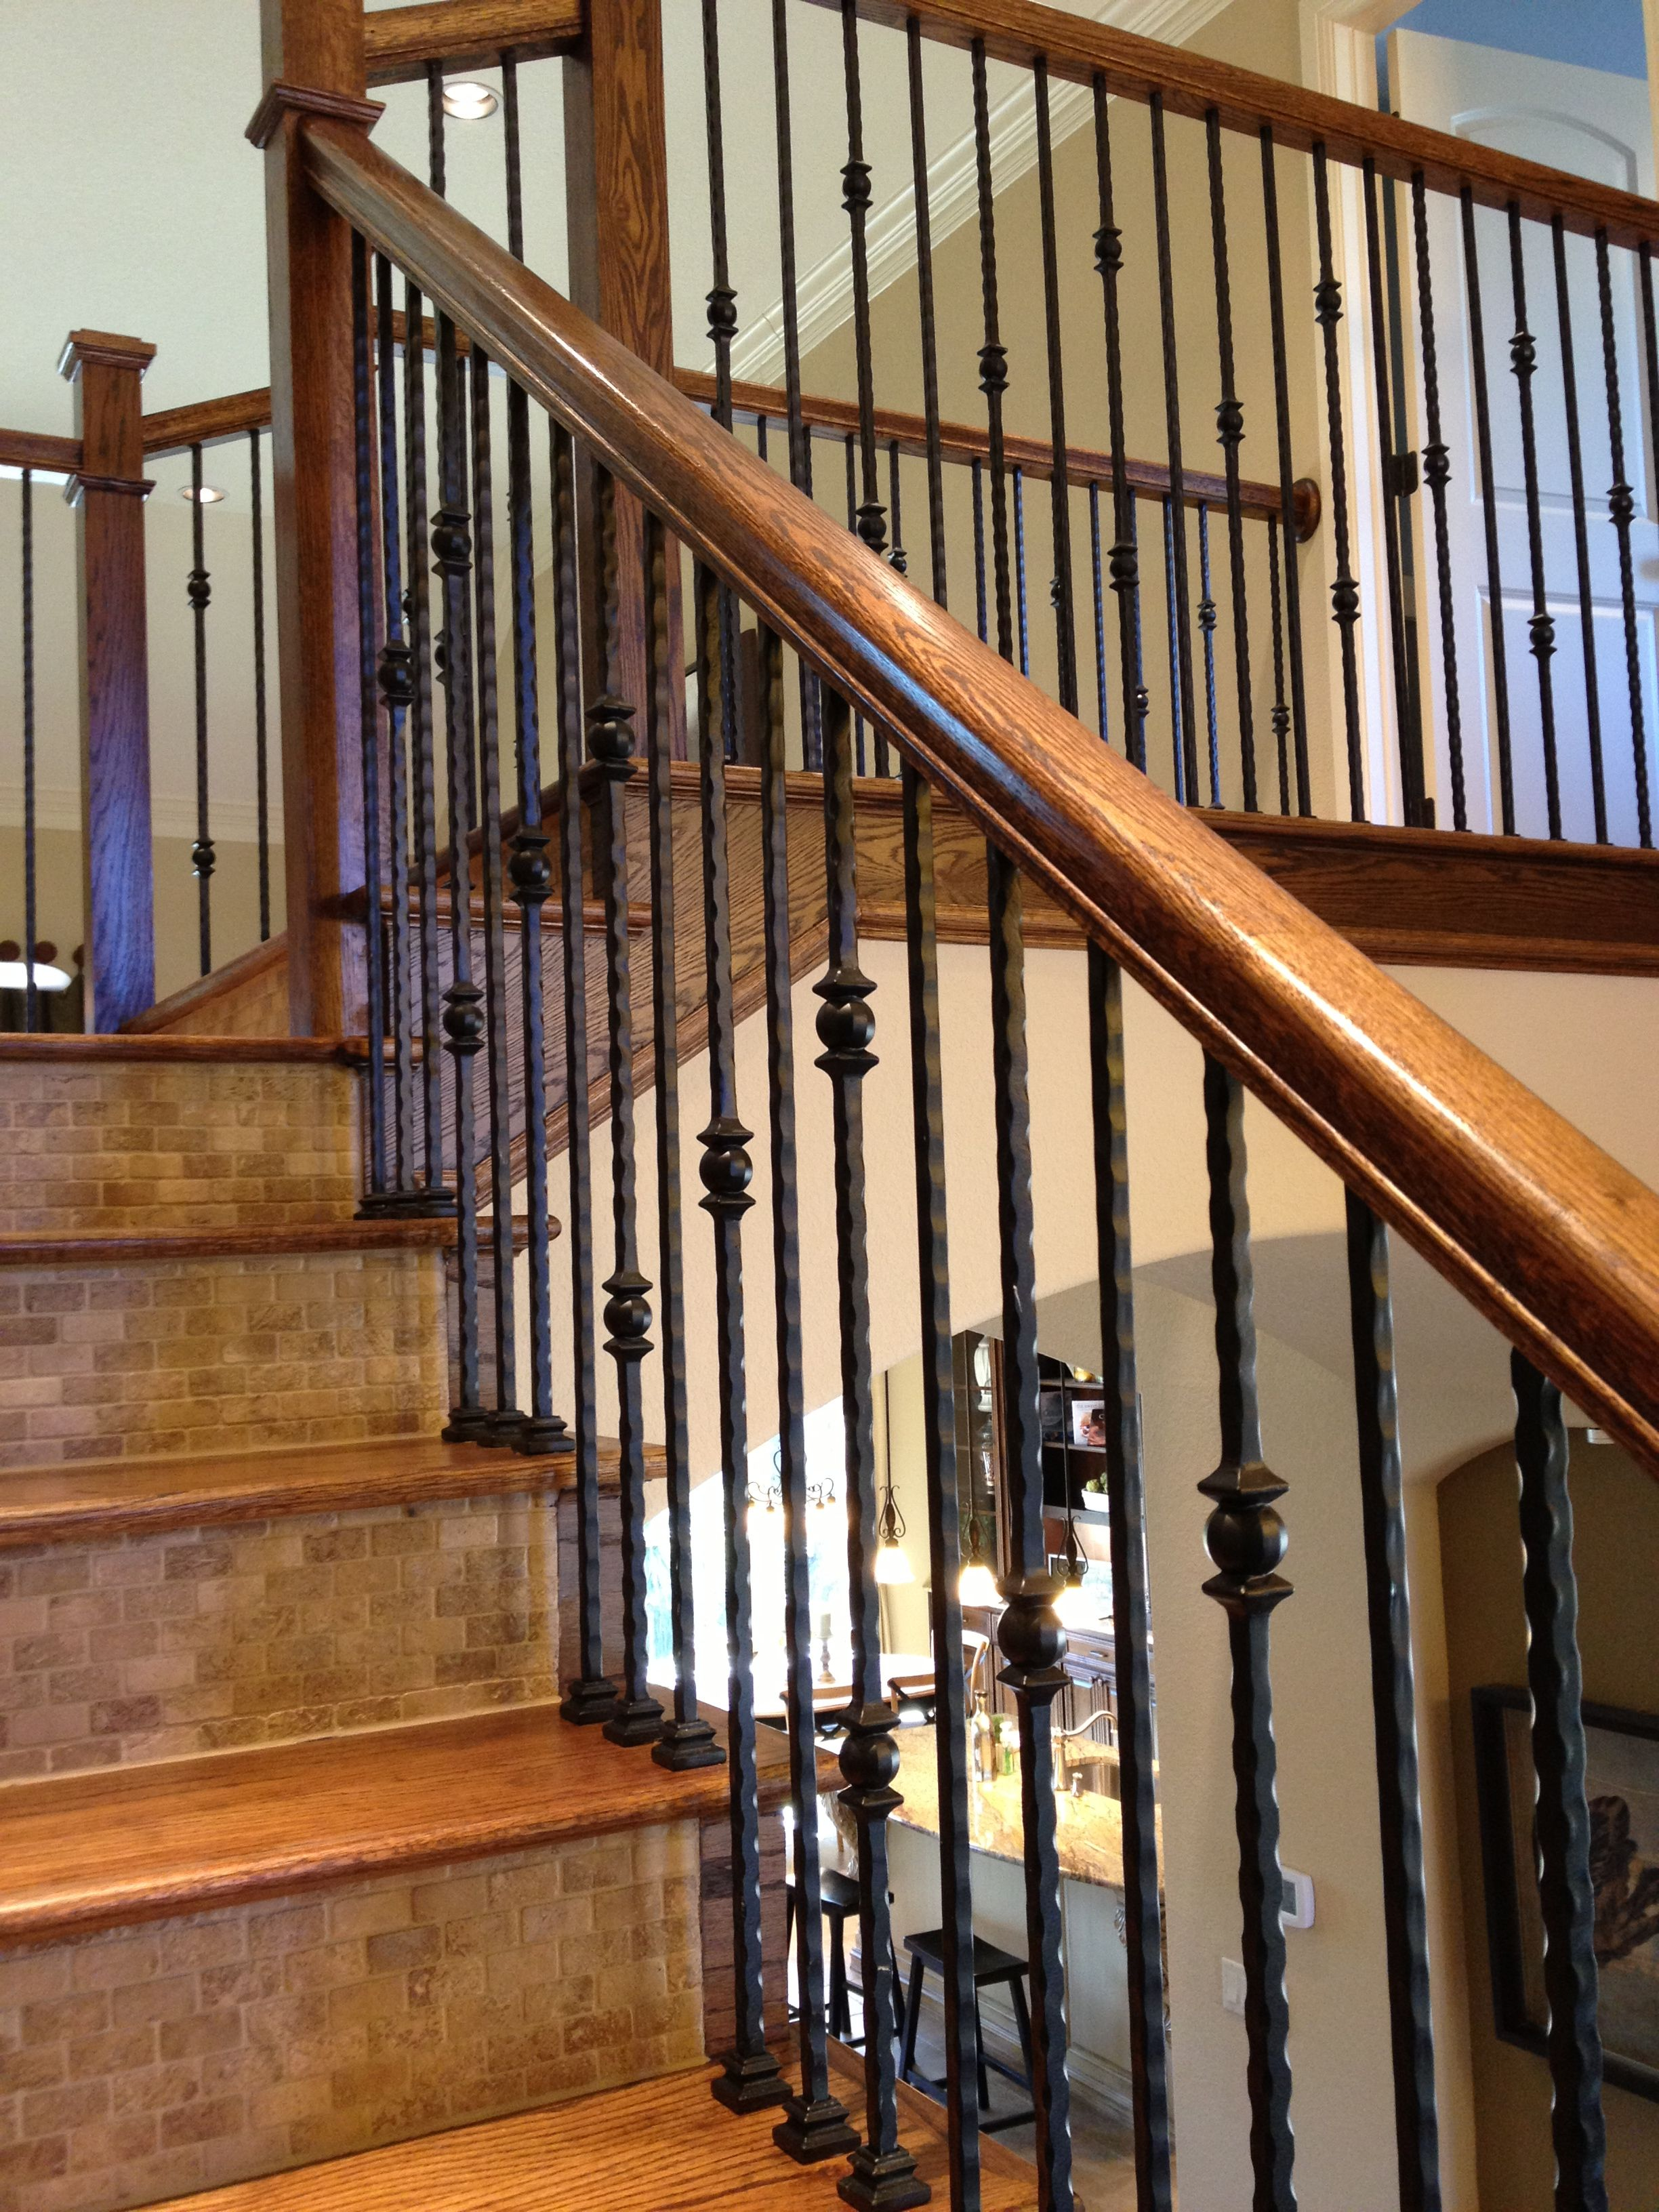 Best Railing Indoor Railing Home Decor Wrought Iron Stairs 640 x 480